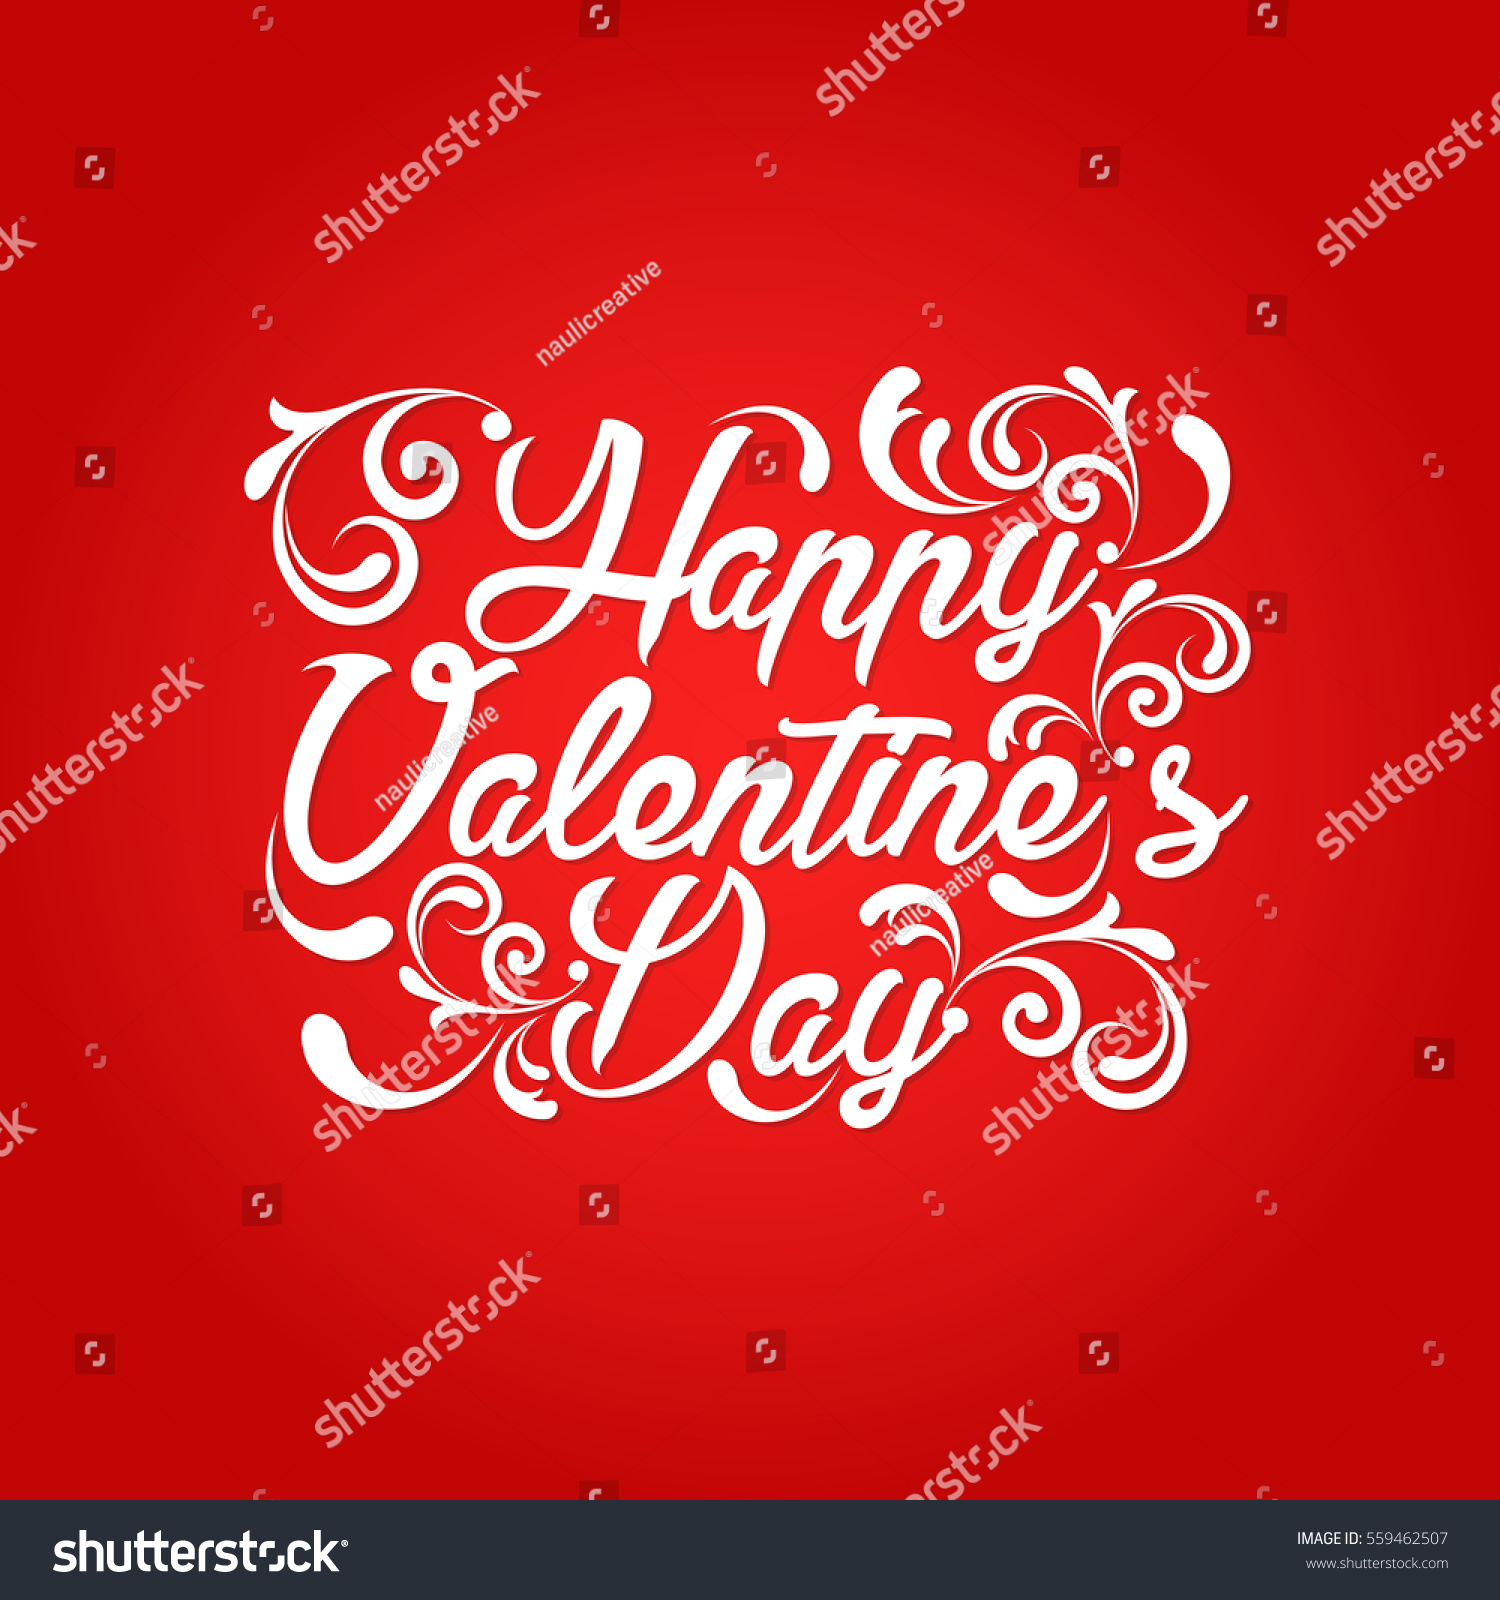 Modern Romantic Happy Valentine Card Suitable For Invitation Web